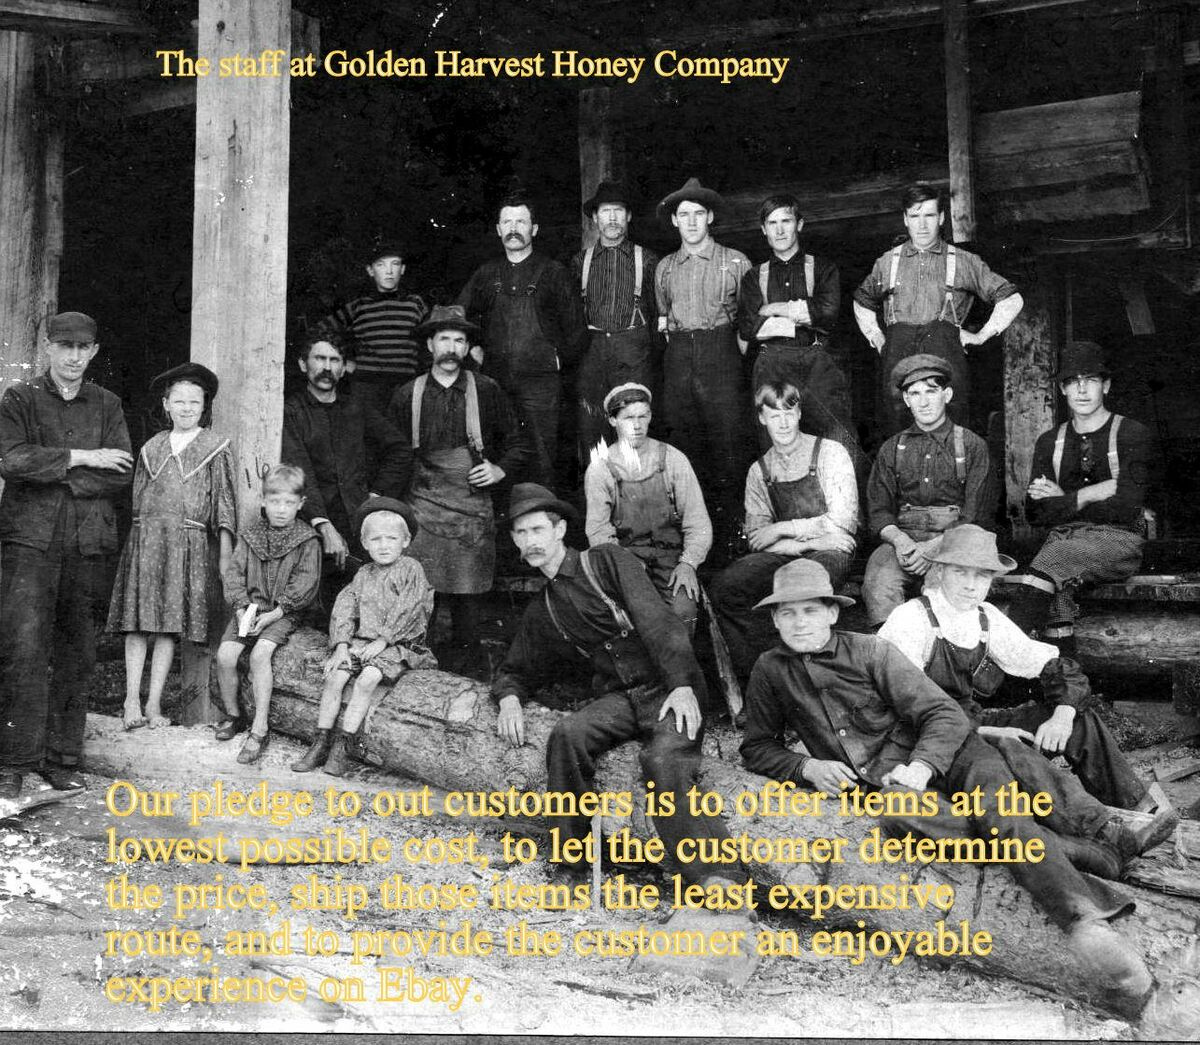 Golden Harvest Honey Company